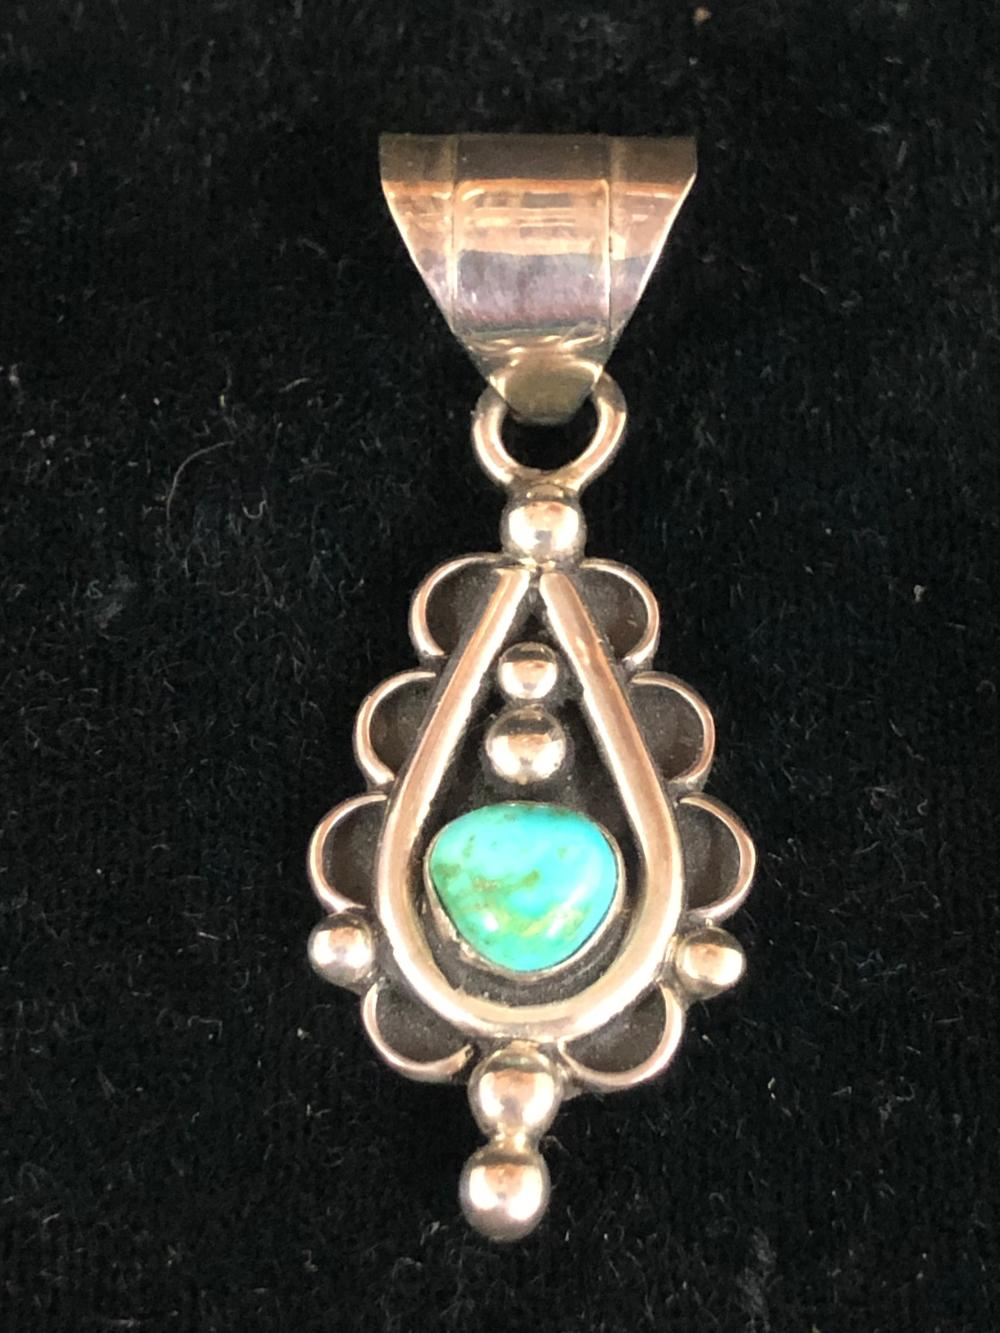 Two Sided Sterling Silver Pendant with Turquoise